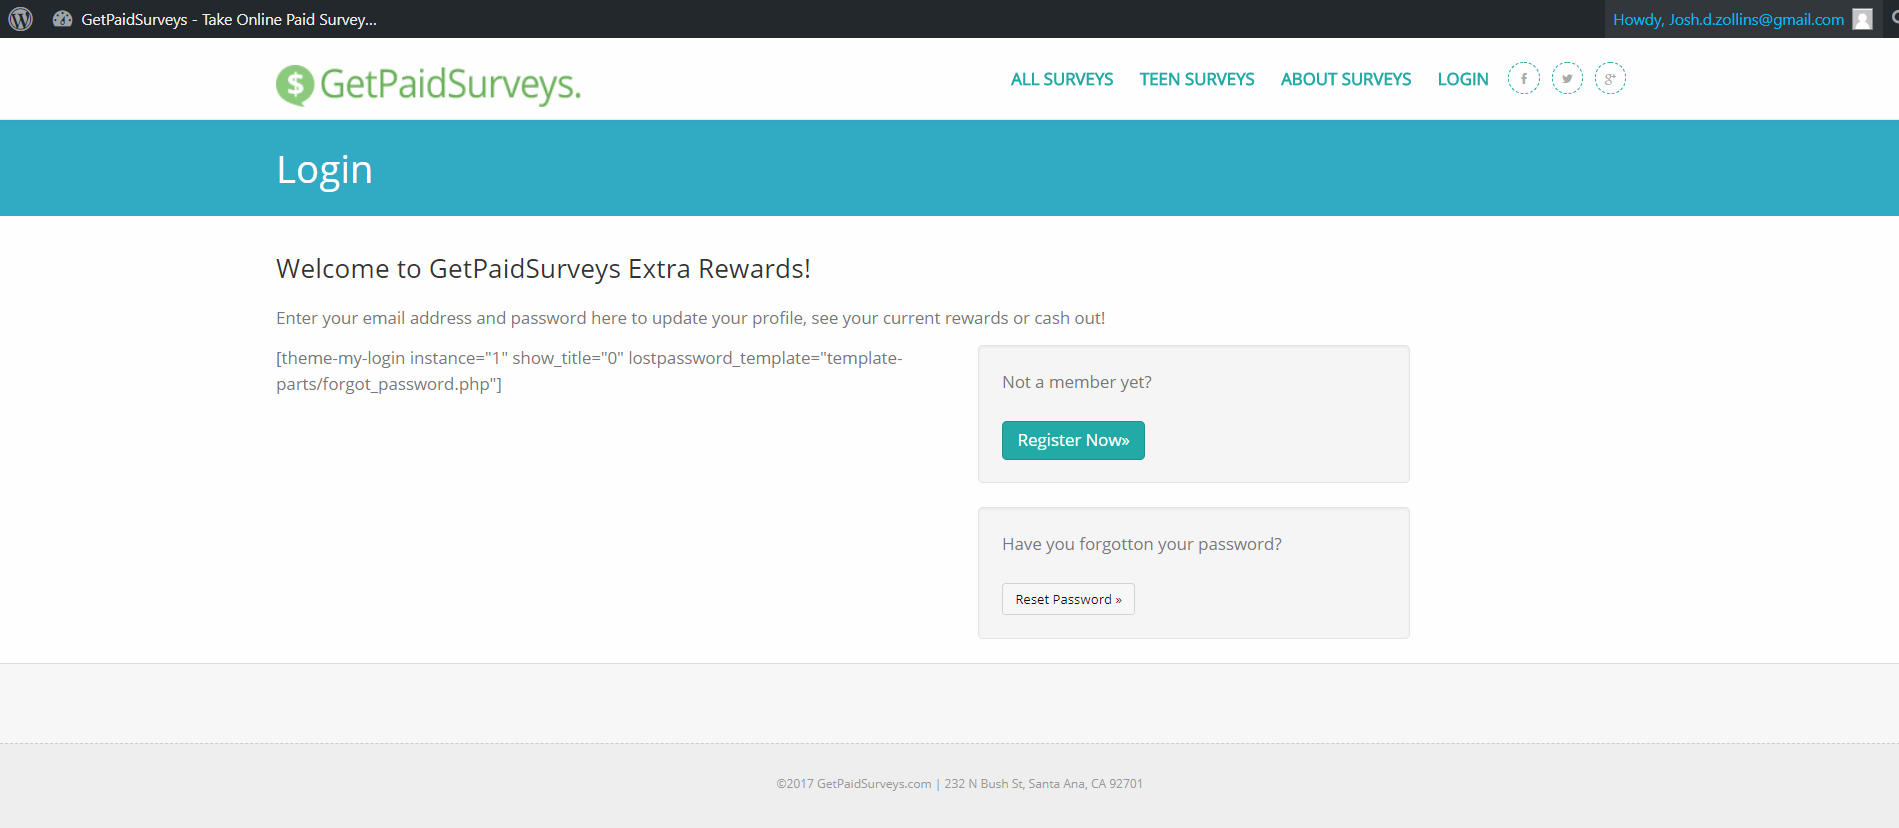 GetPaidSurveys Logged In